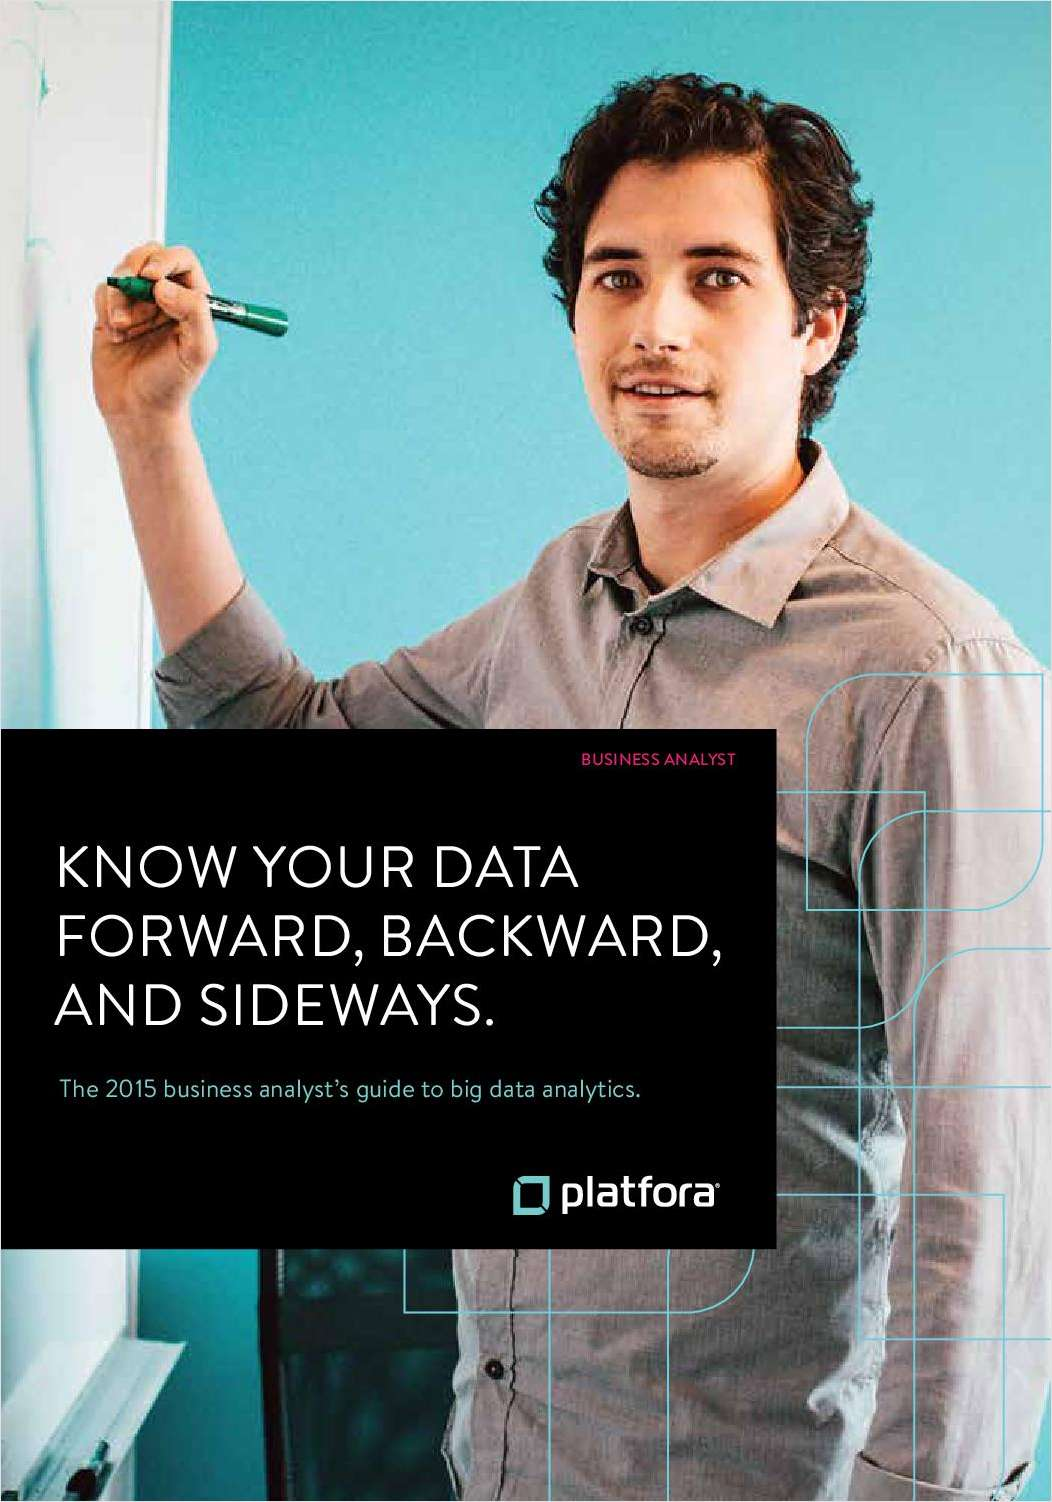 Know Your Data Forward, Backward and Sideways